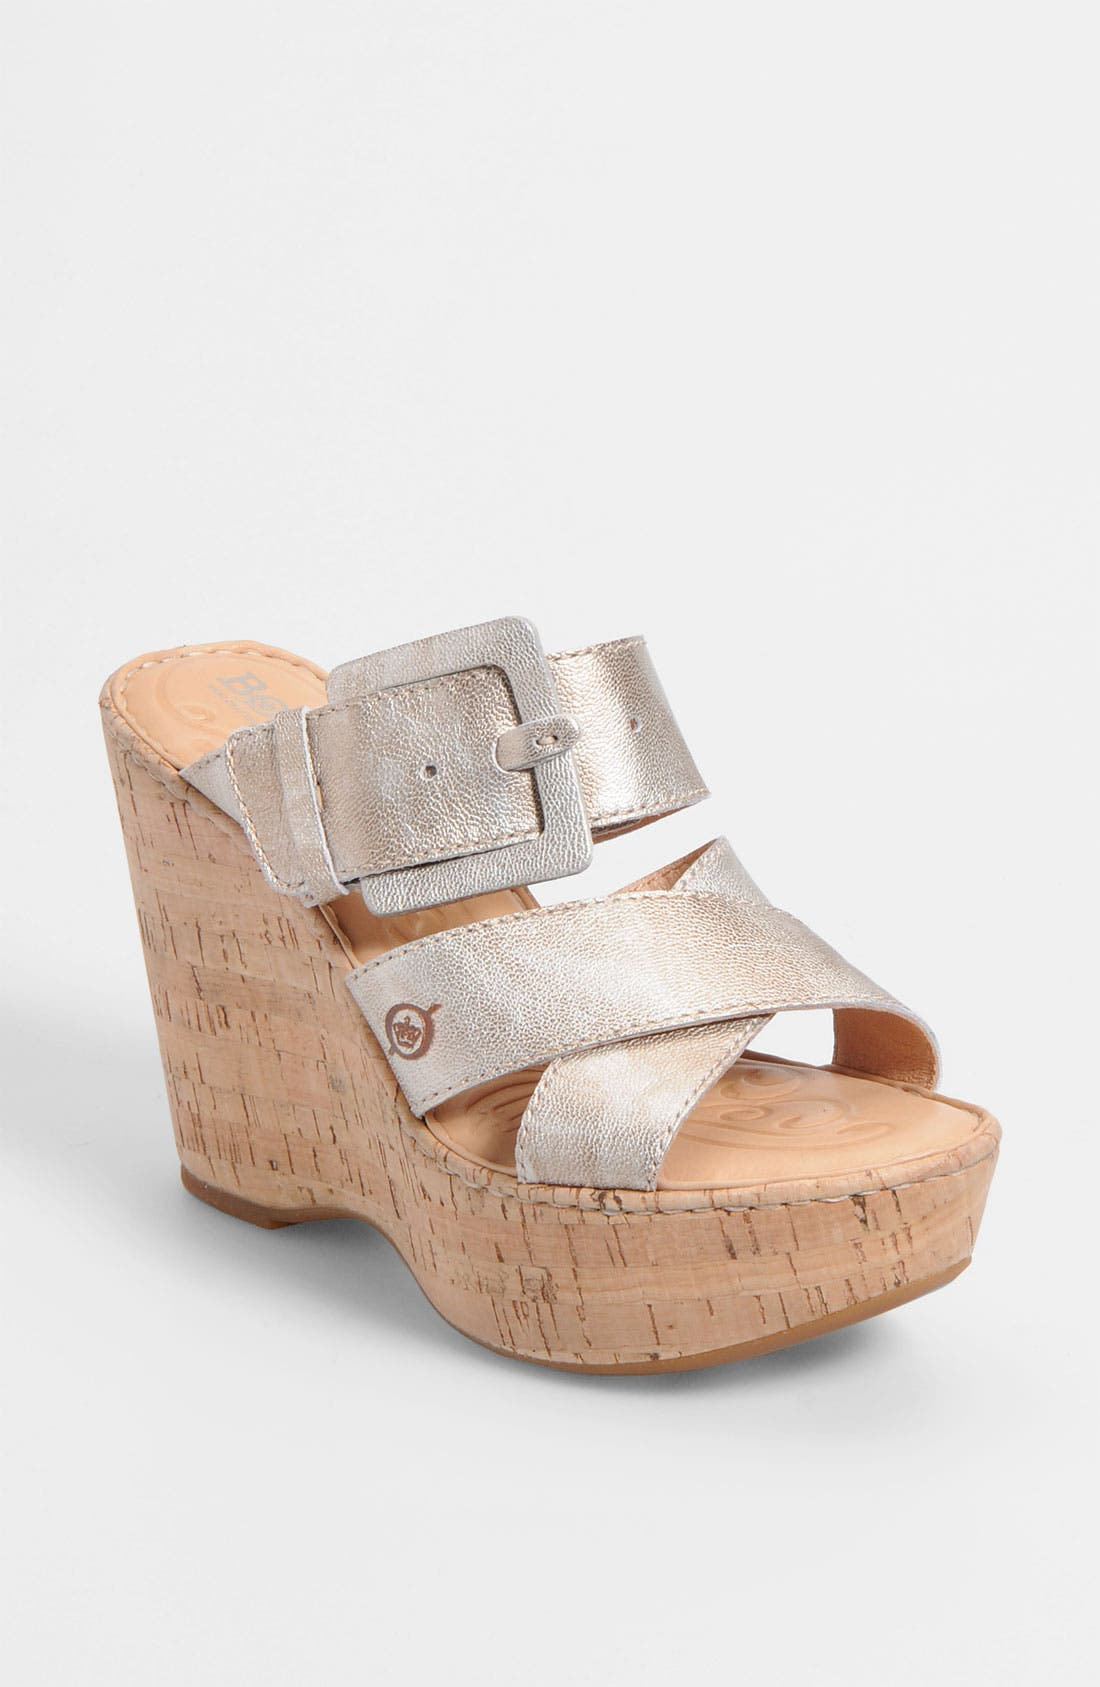 Alternate Image 1 Selected - Børn 'Beau' Wedge Sandal (Nordstrom Exclusive)